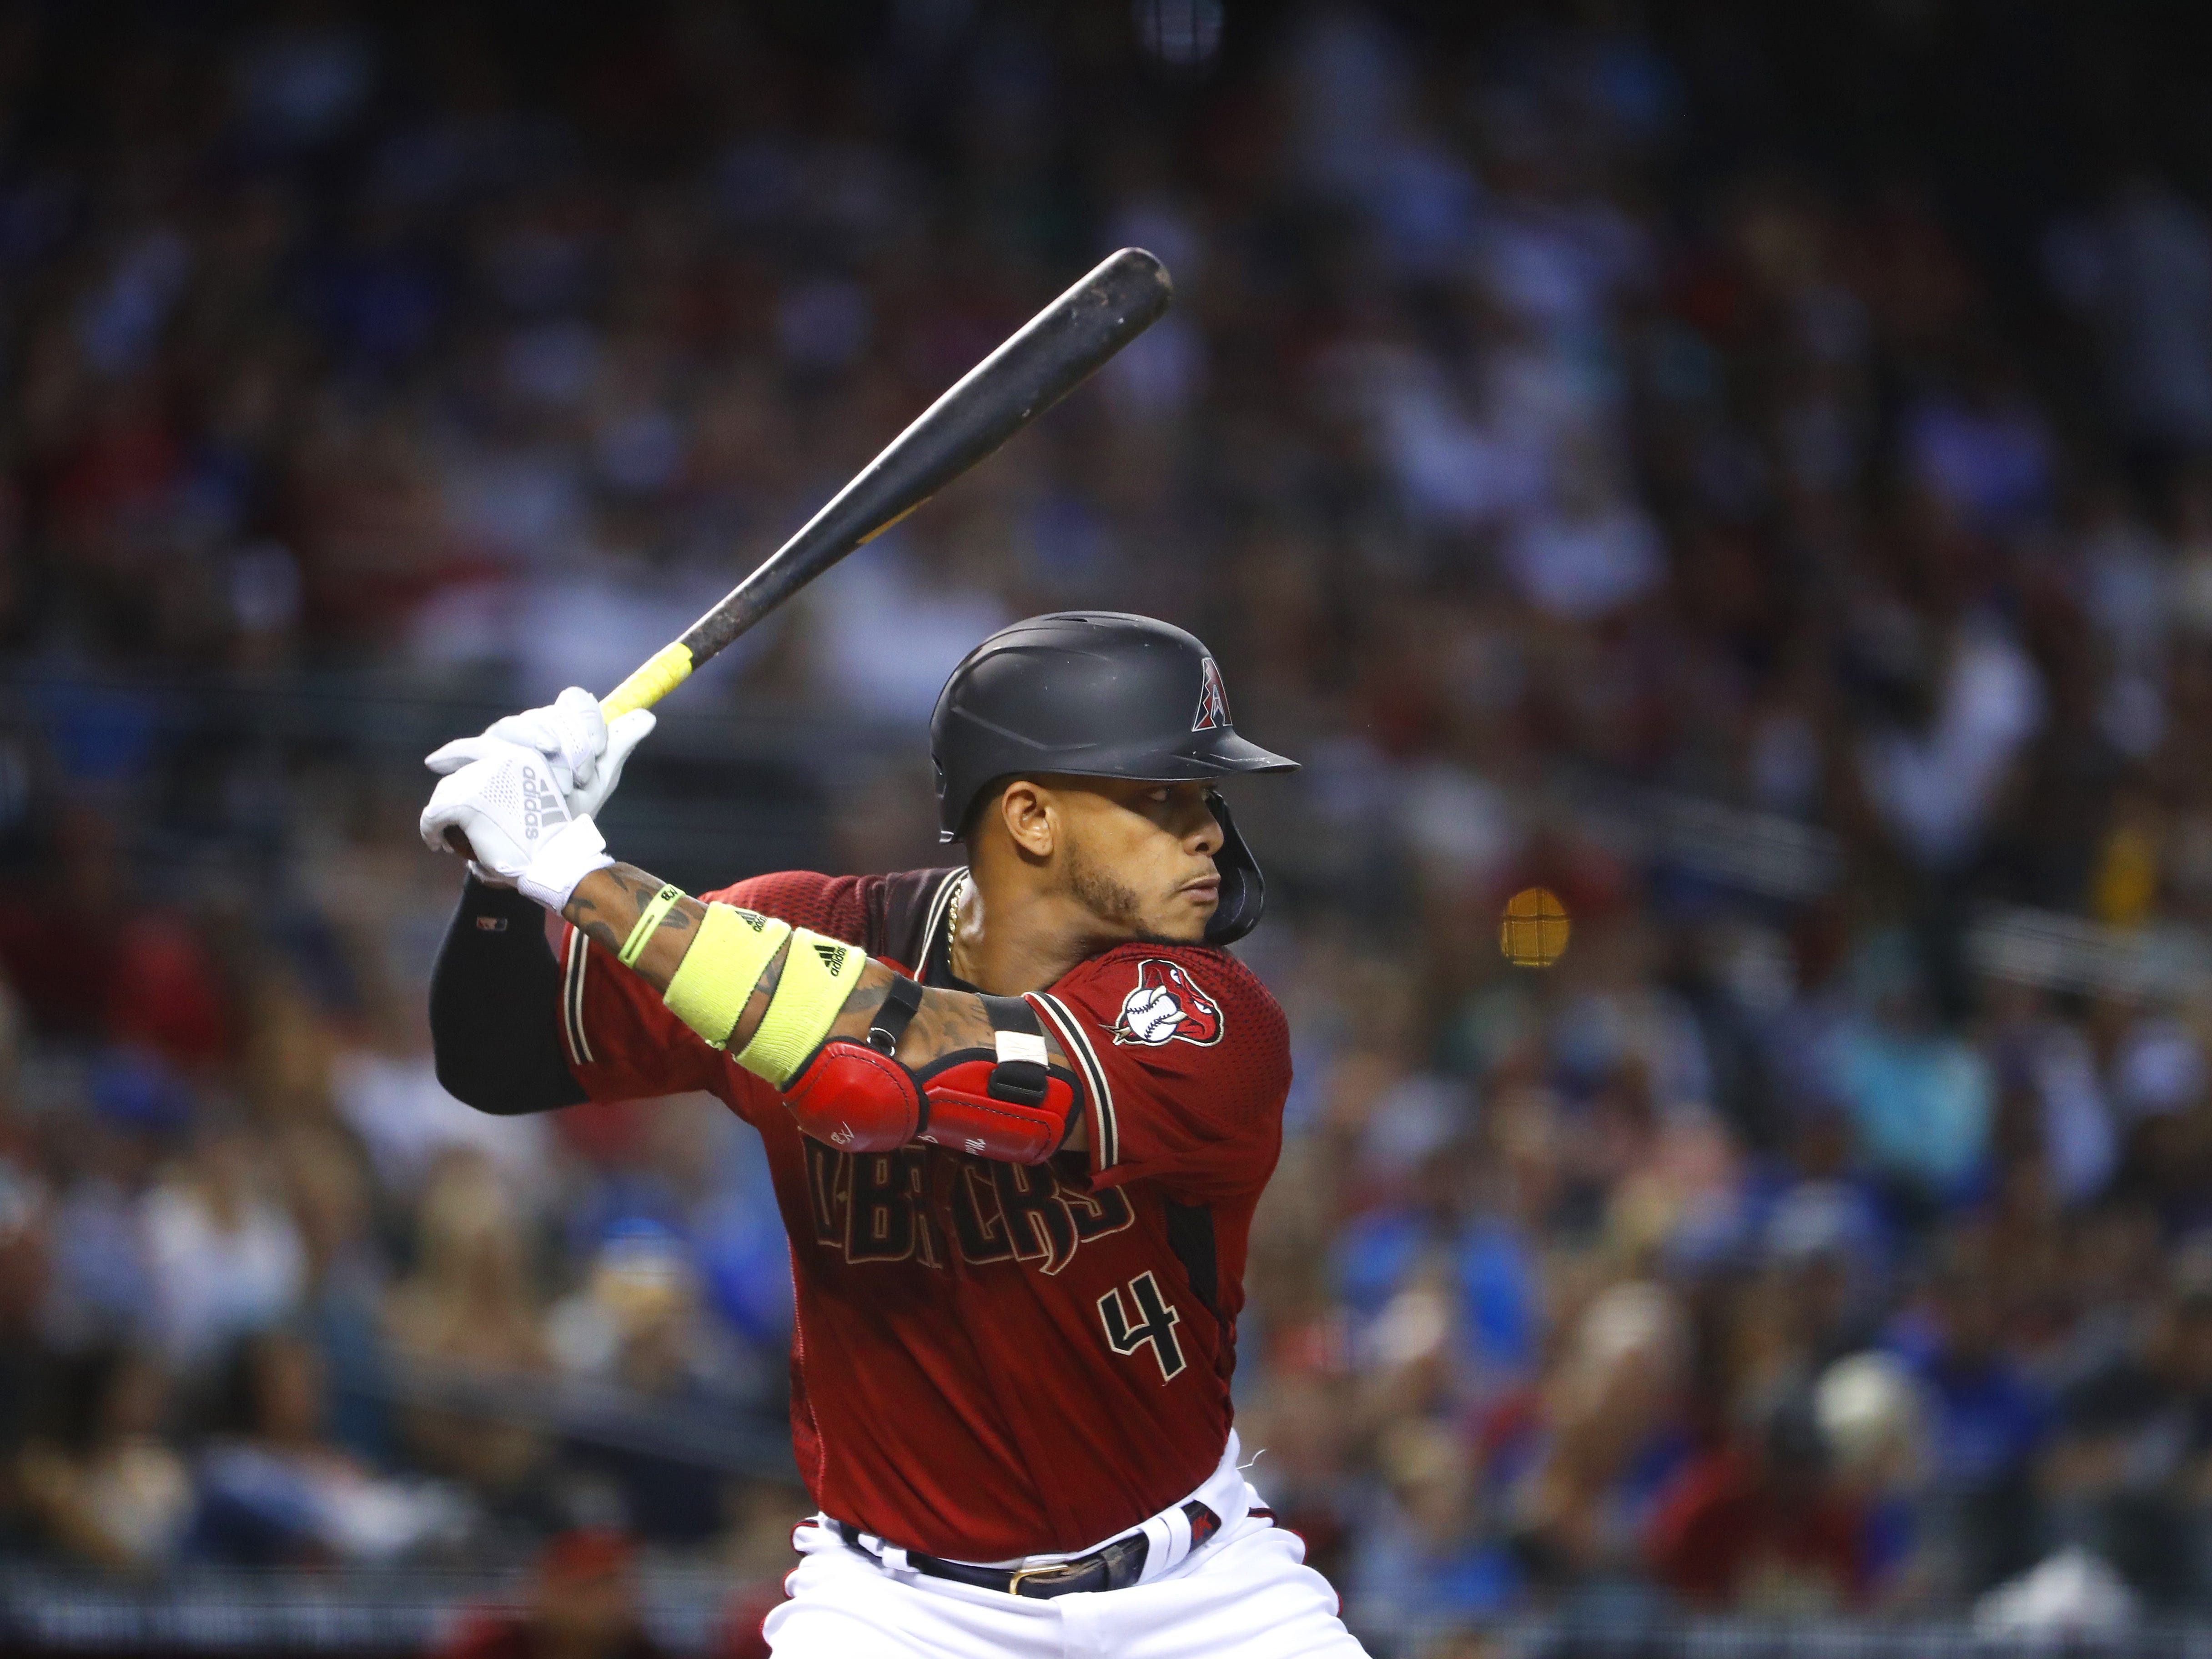 Diamondbacks' Ketel Marte (4) swings against the Cubs during the first inning at Chase Field in Phoenix, Ariz. on April 28, 2019.